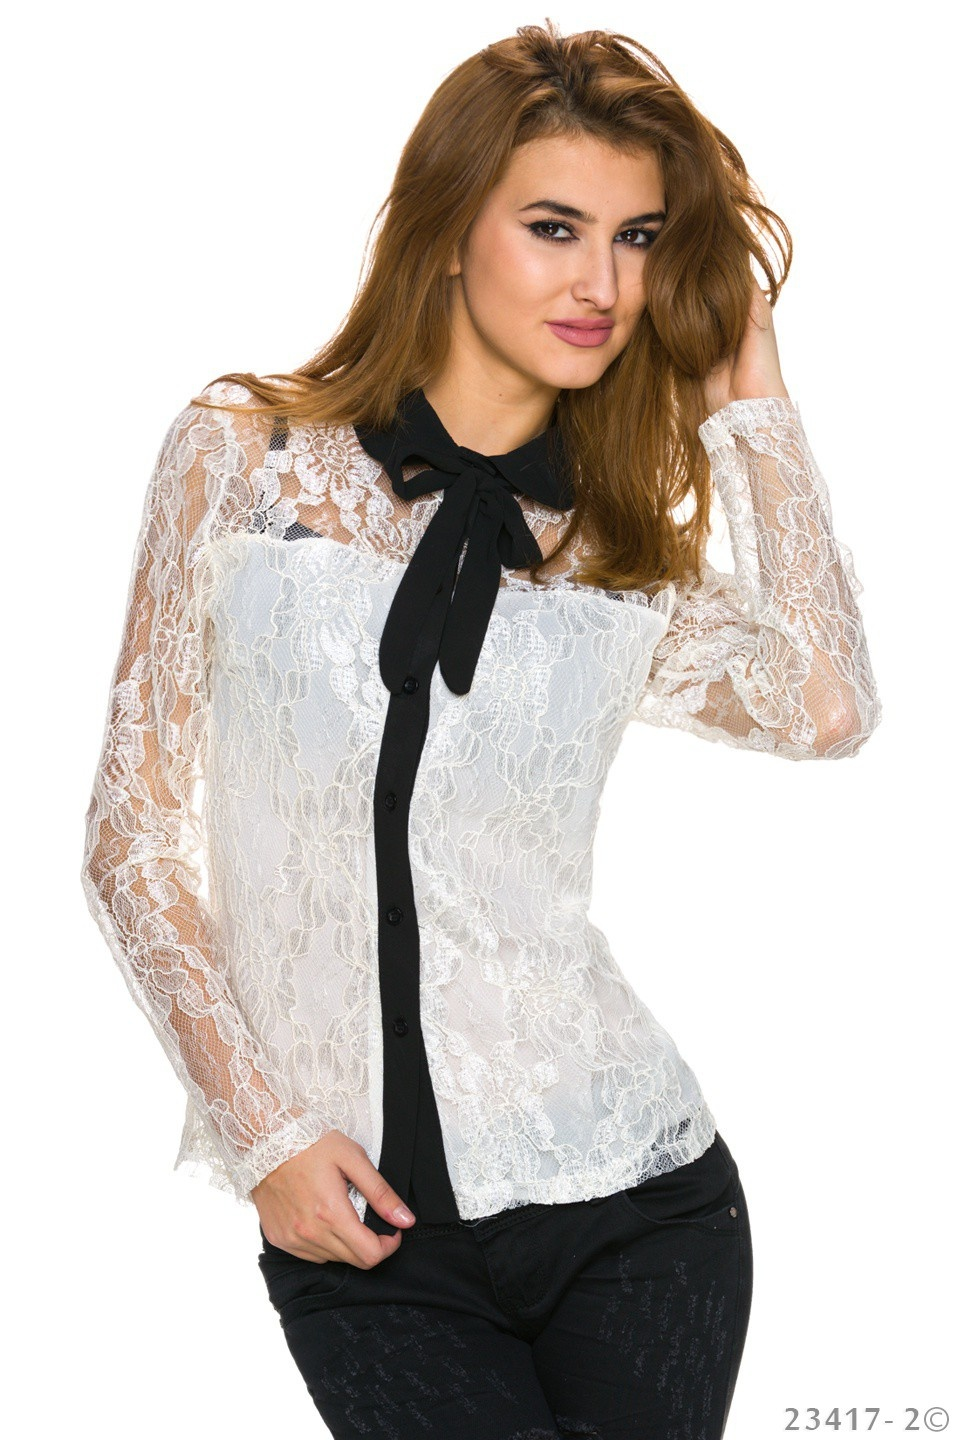 Blouse White - Black